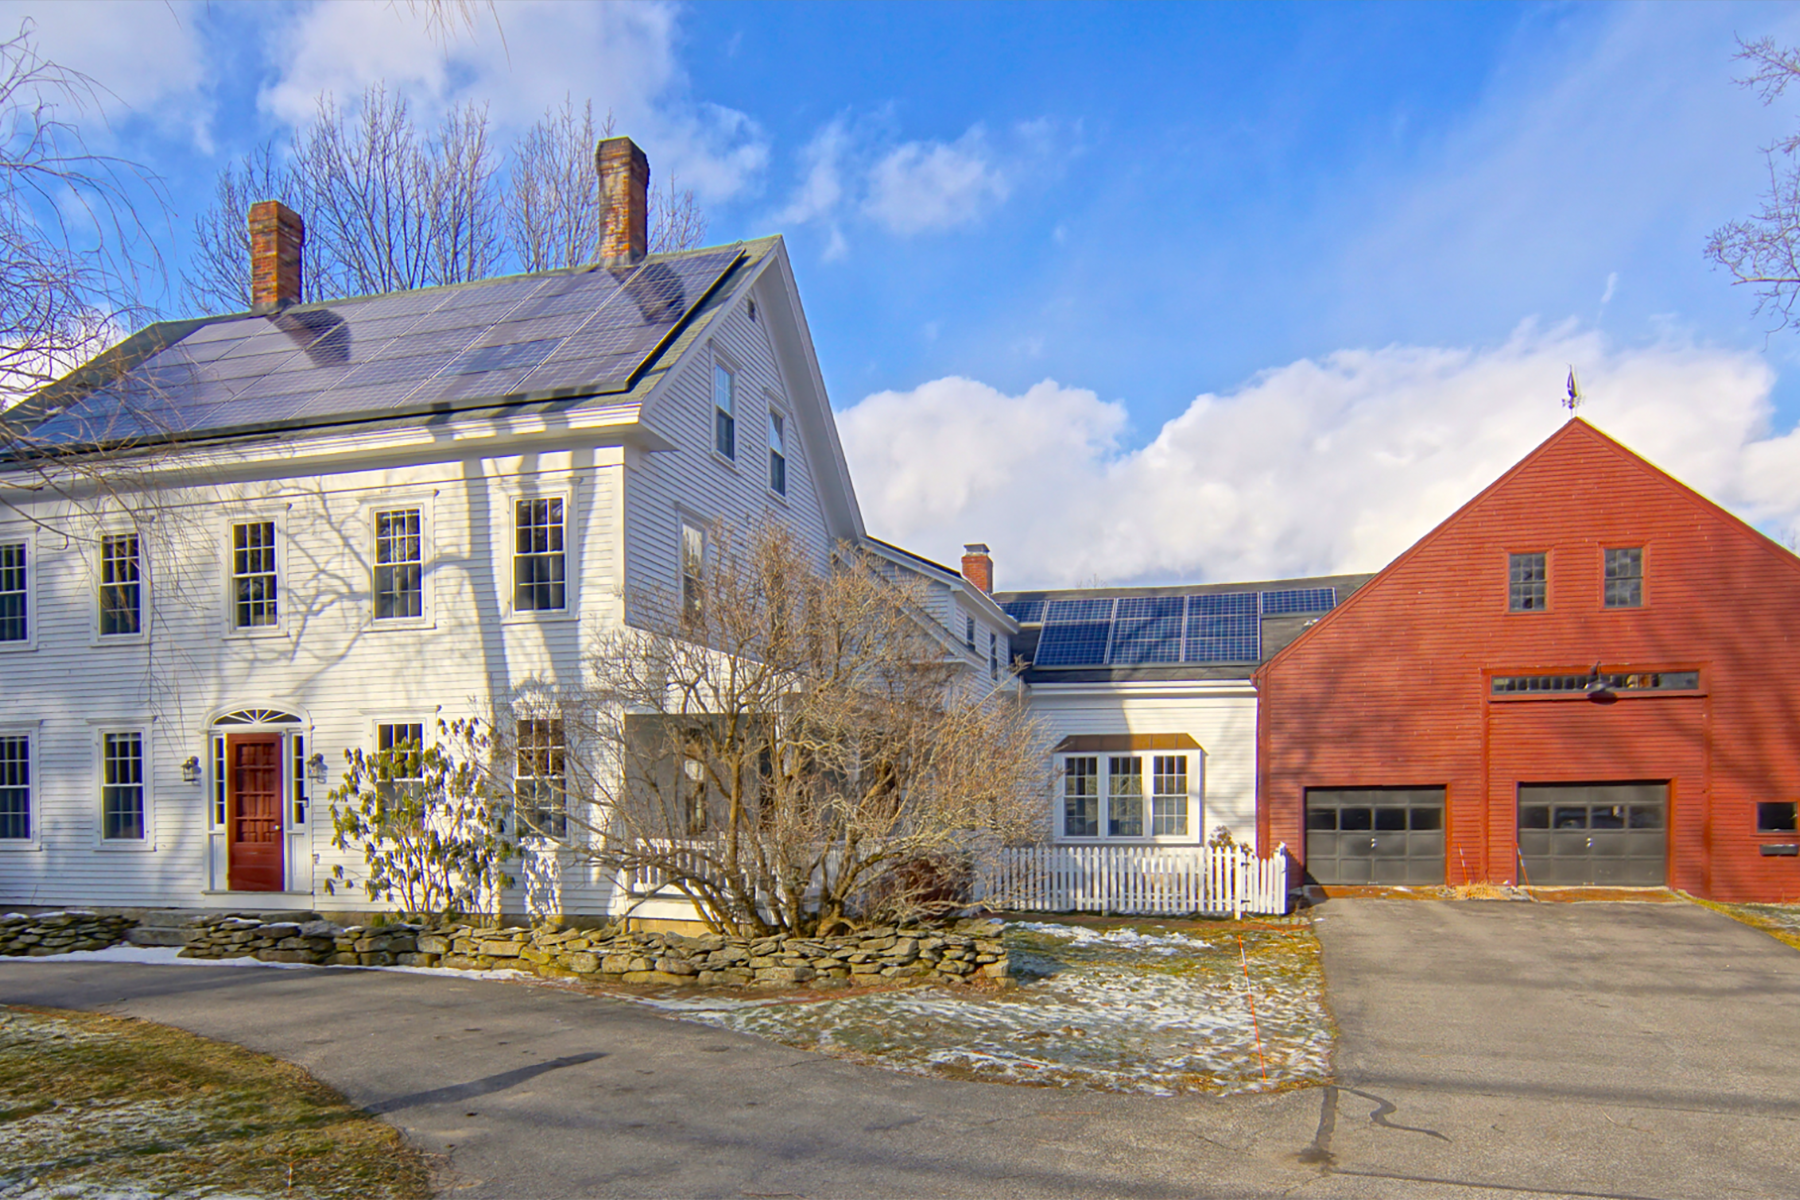 Single Family Homes for Sale at 115 Atlantic Ave North Hampton, New Hampshire 03862 United States